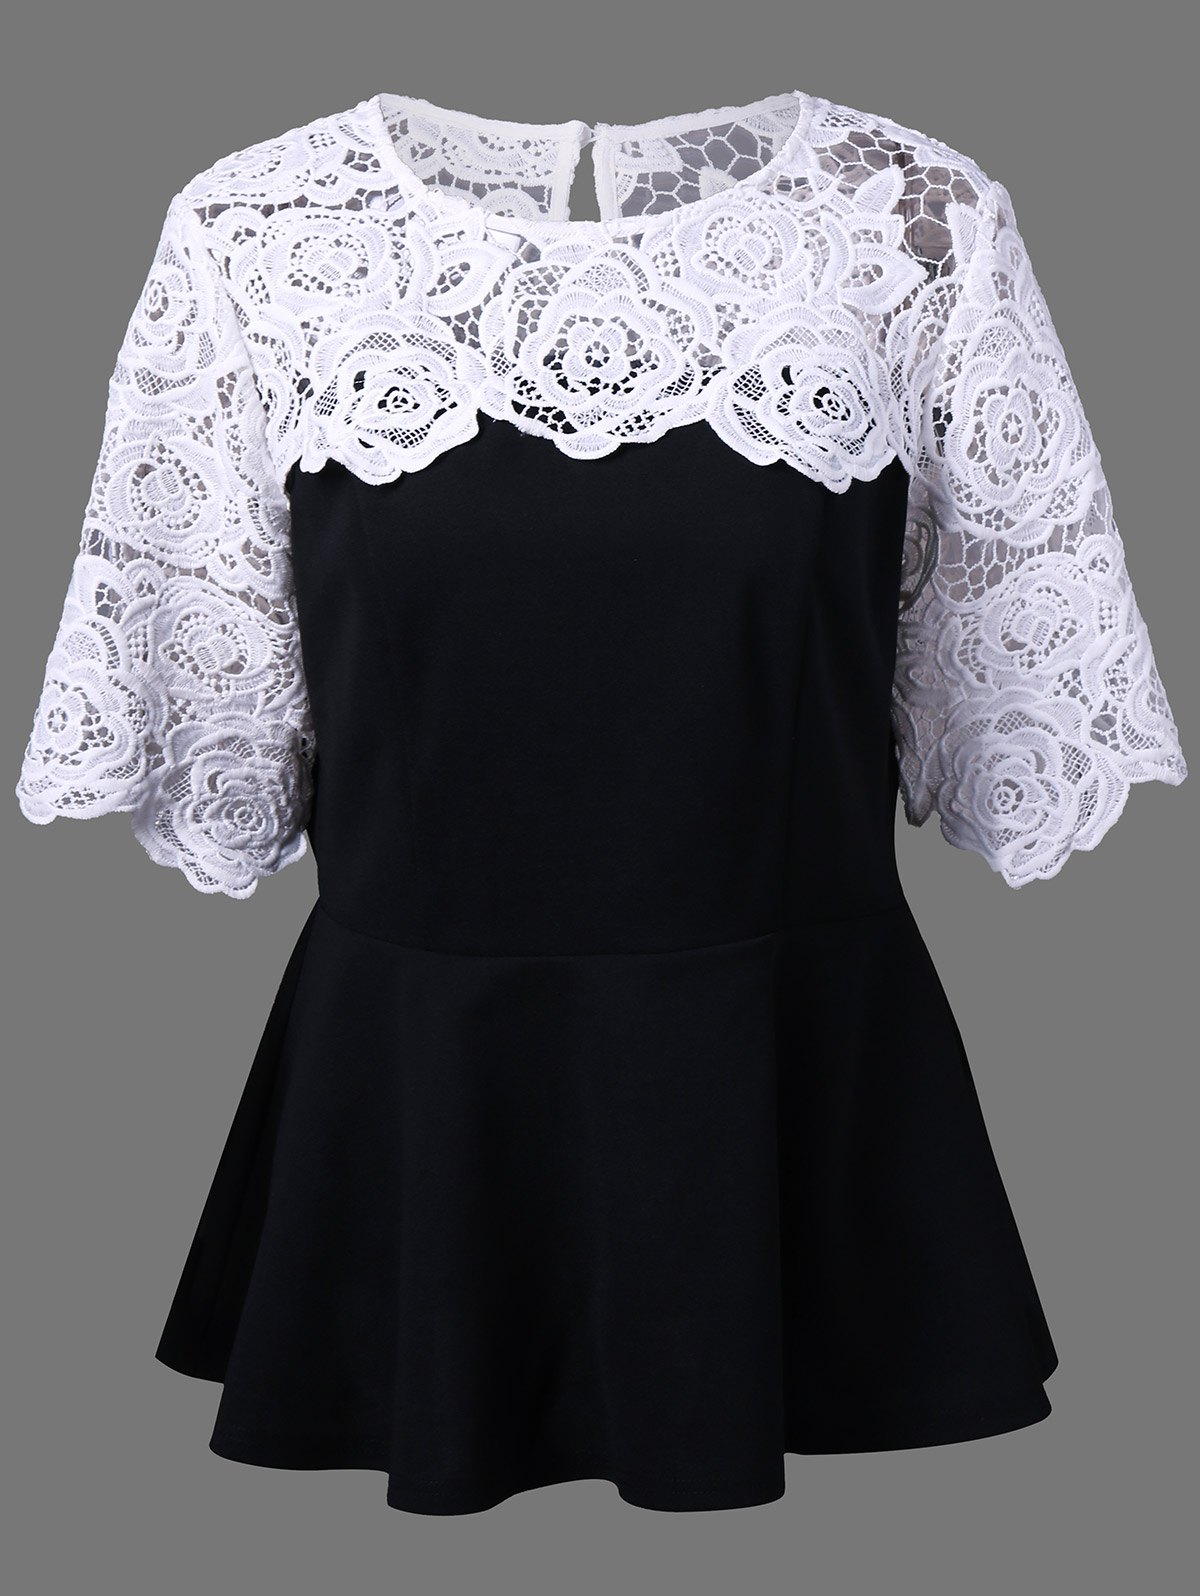 Plus Size Lace Insert Peplum TopWOMEN<br><br>Size: 5XL; Color: WHITE AND BLACK; Material: Polyester,Spandex; Shirt Length: Long; Sleeve Length: Short; Collar: Round Neck; Style: Fashion; Season: Fall,Spring,Summer; Embellishment: Lace; Pattern Type: Others; Weight: 0.320kg; Package Contents: 1 x Top;